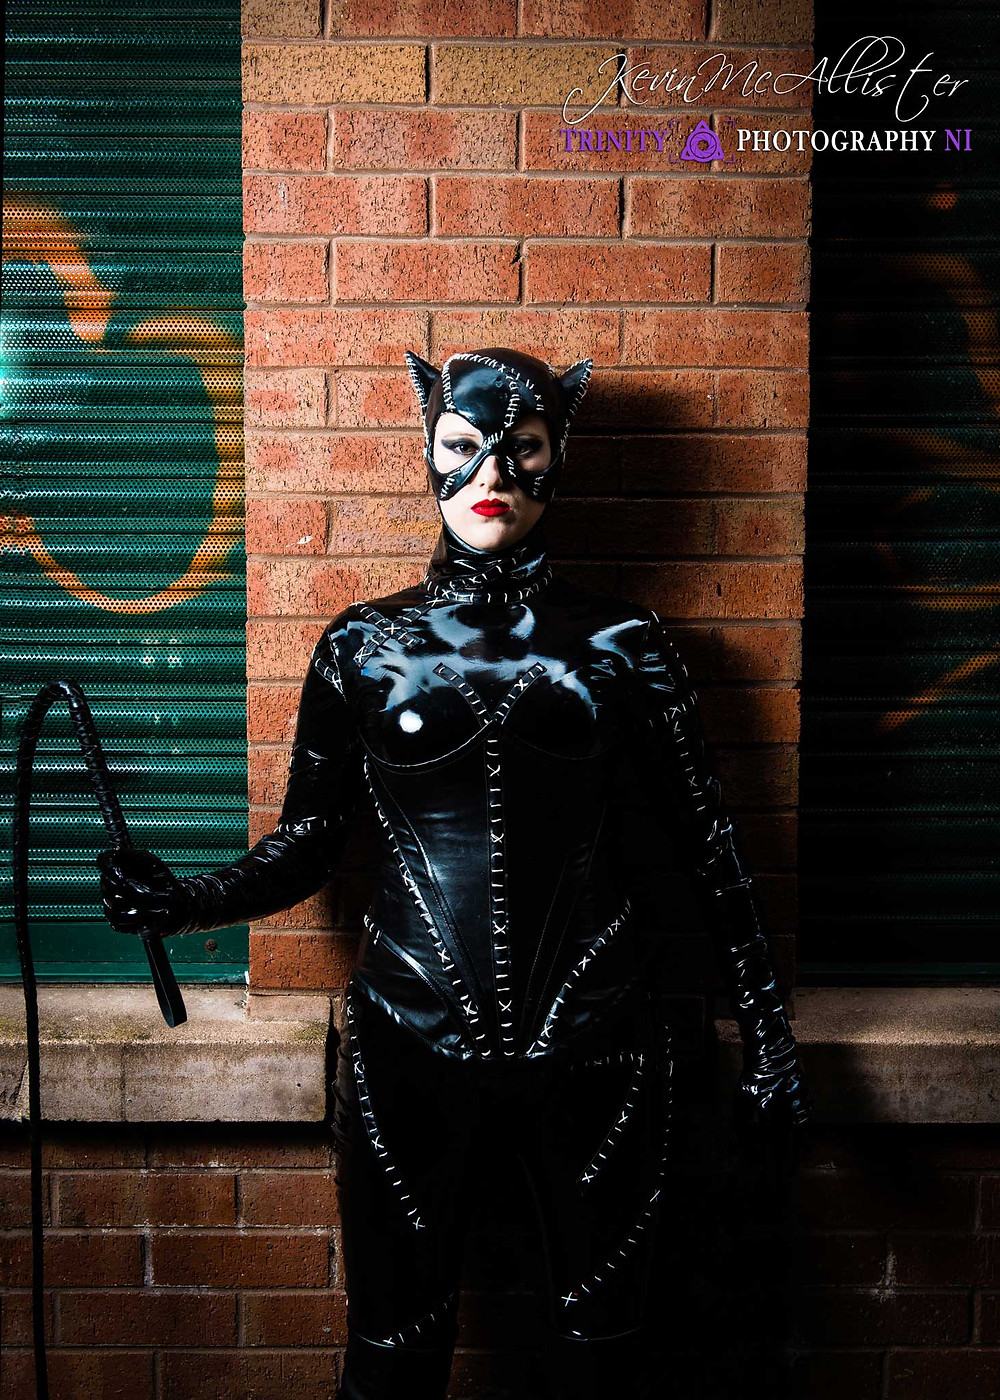 catwoman from batman returns in belfast